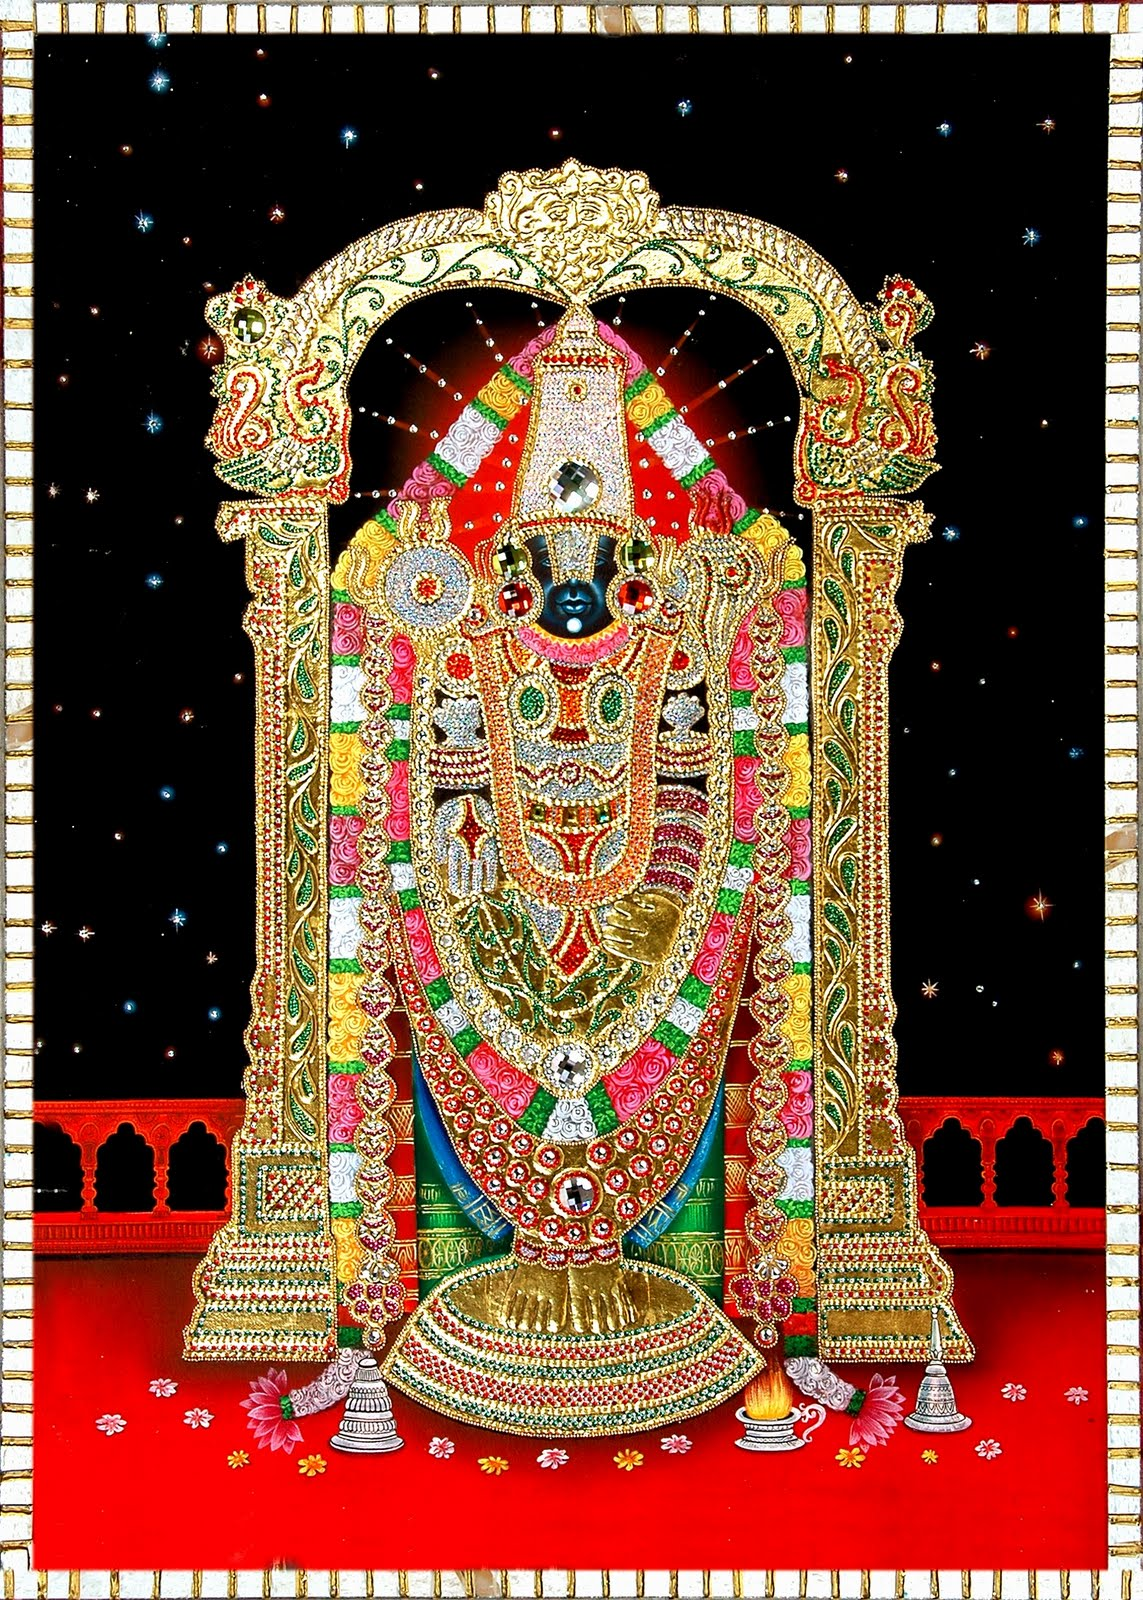 Sri Krishna Hd Wallpaper Download Bhagwan Ji Help Me Lord Tirupati Balaji Photos Wallpapers